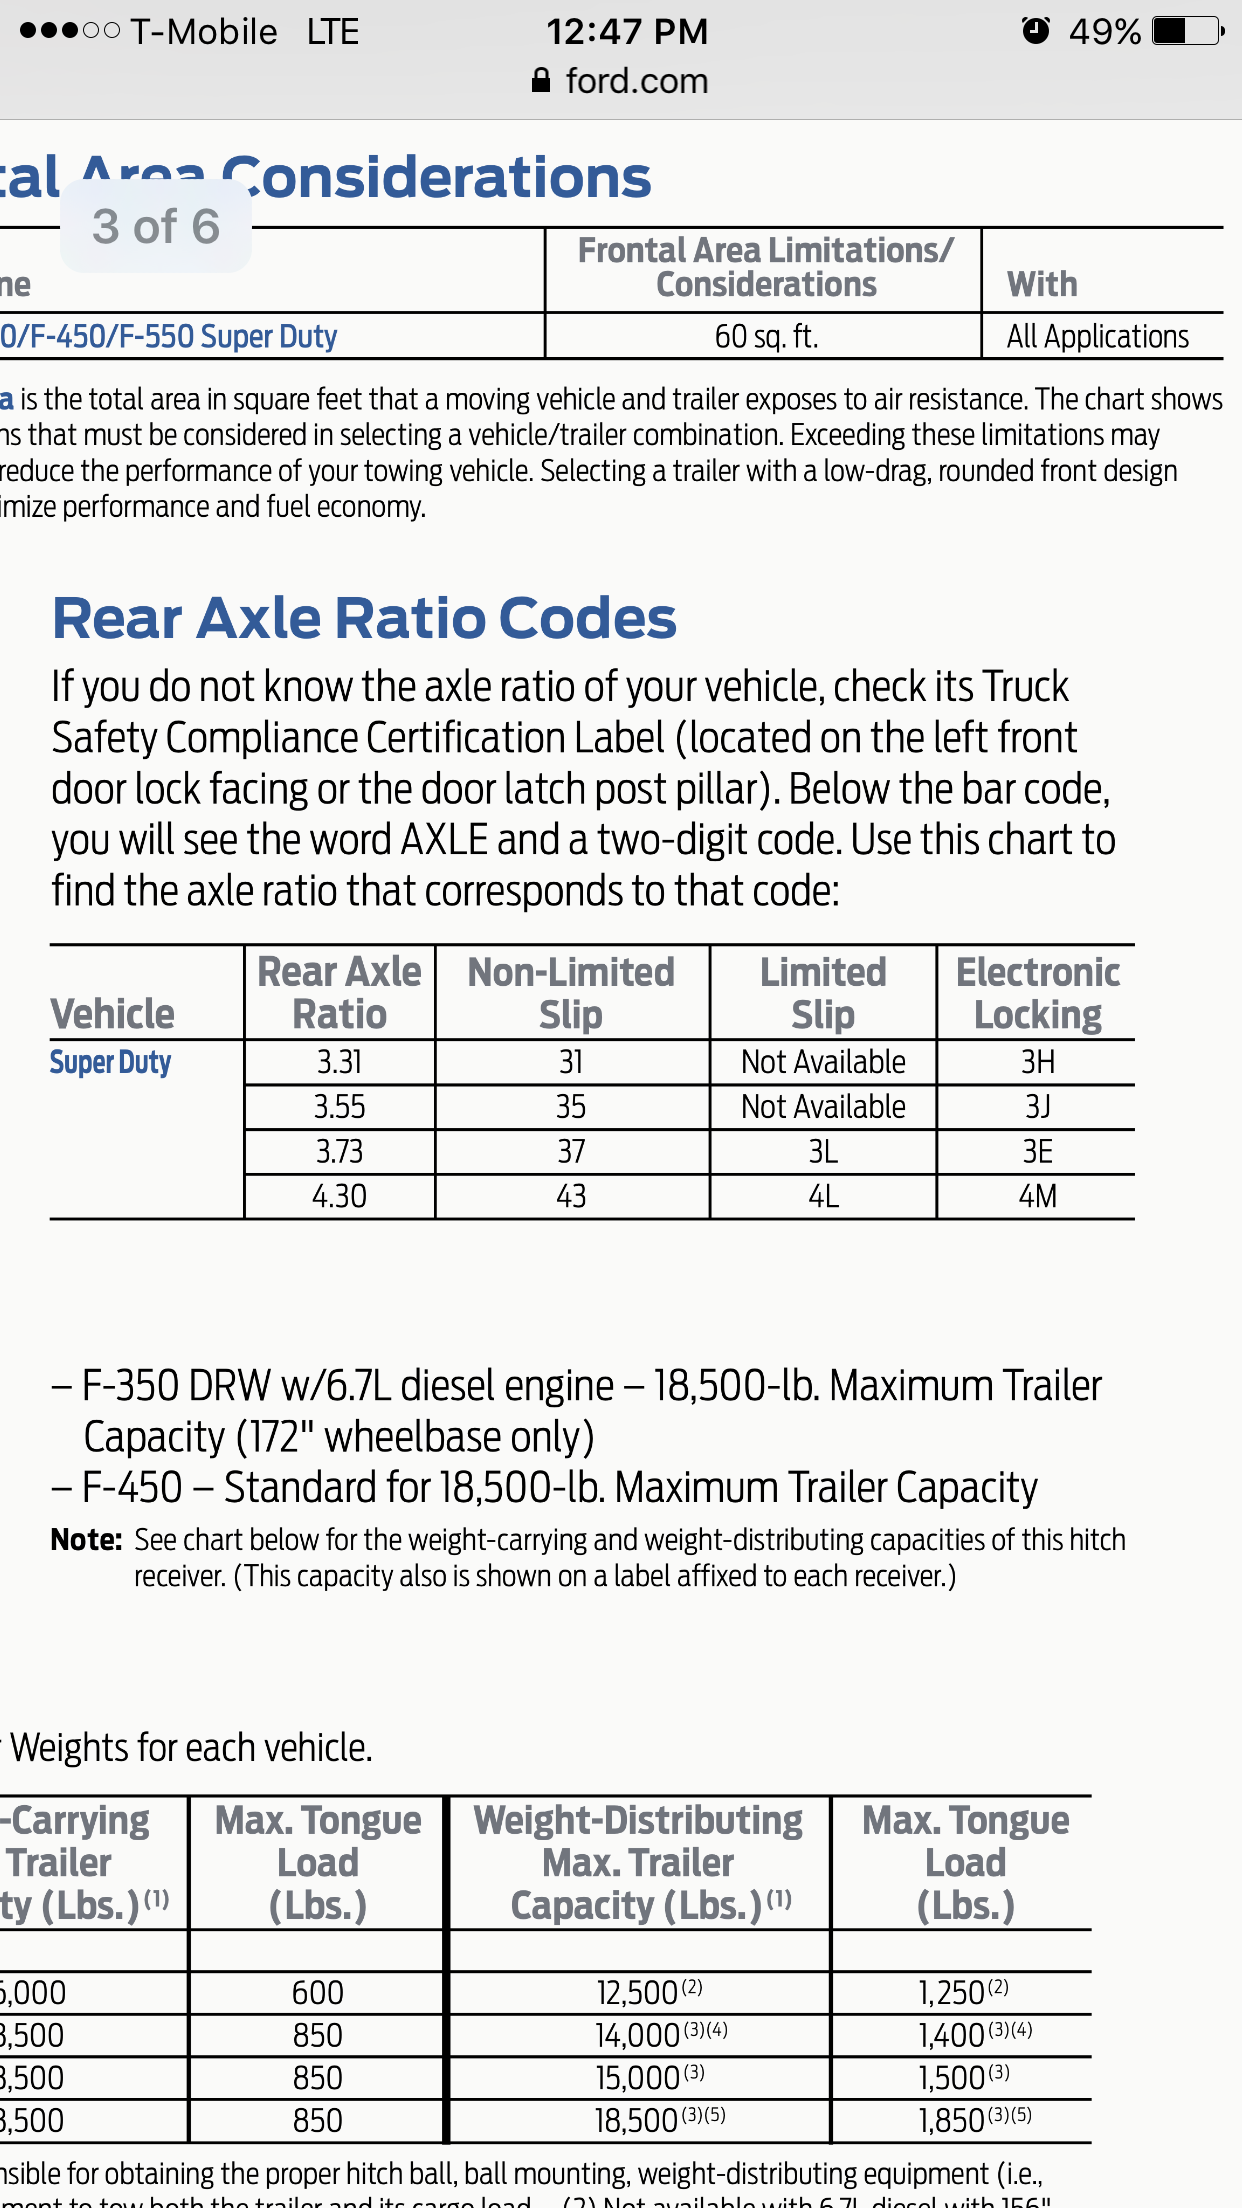 How To Find Rear Axle Ratio - Ford Powerstroke Diesel Forum